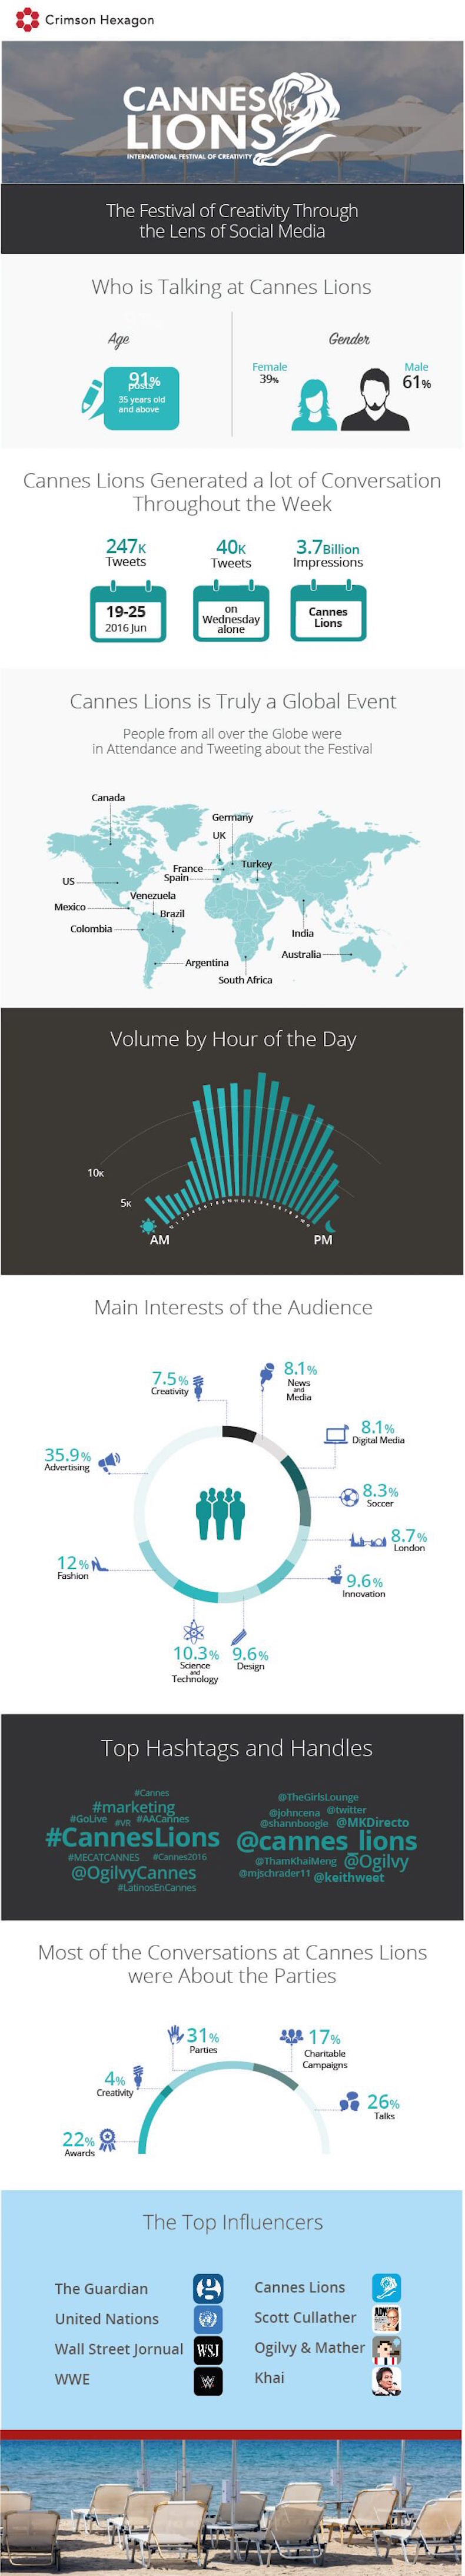 Cannes Lions Infographic